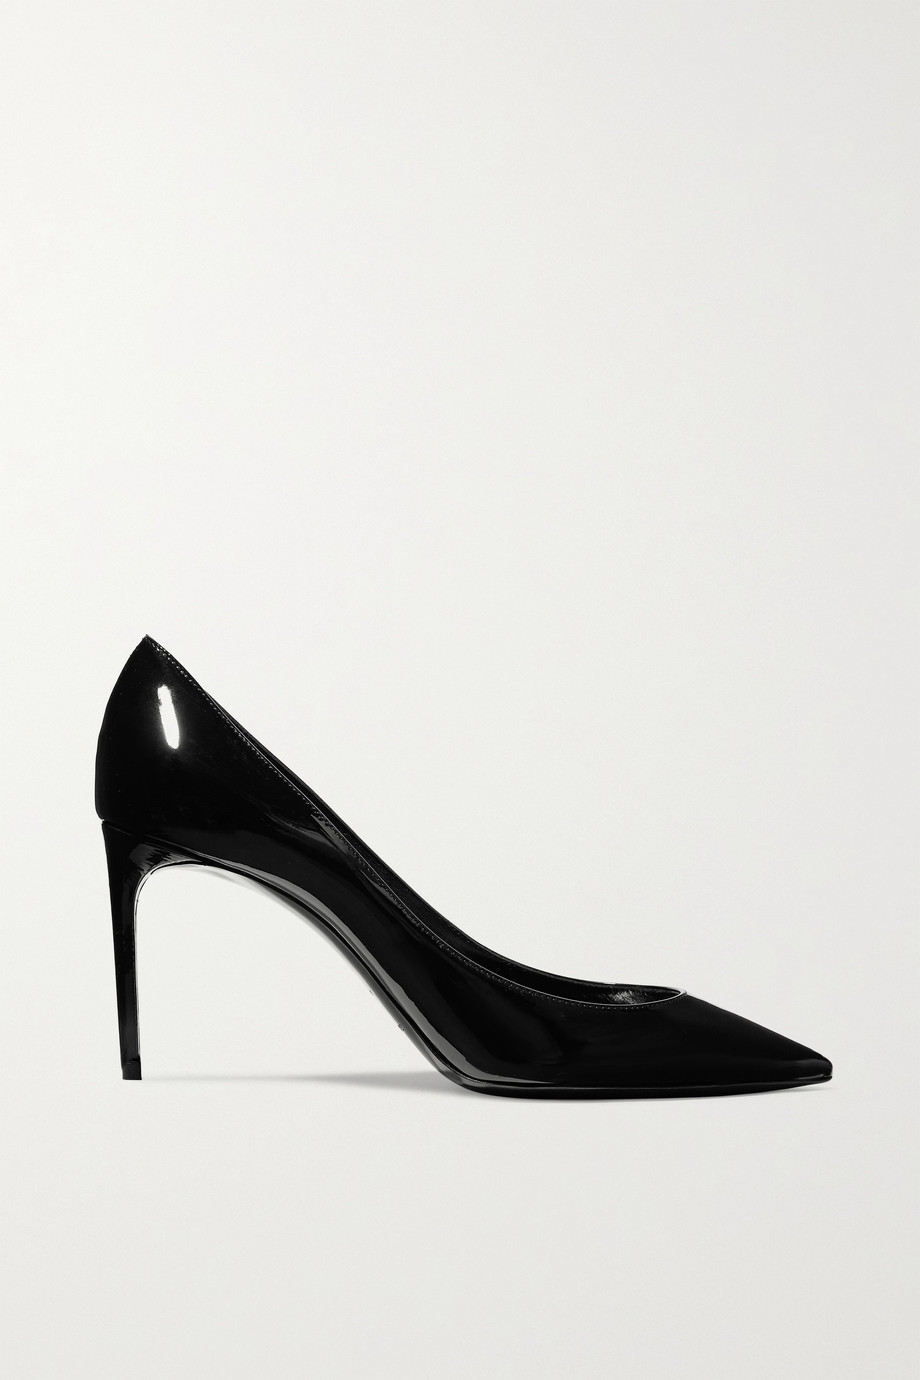 SAINT LAURENT Zoe patent-leather pumps